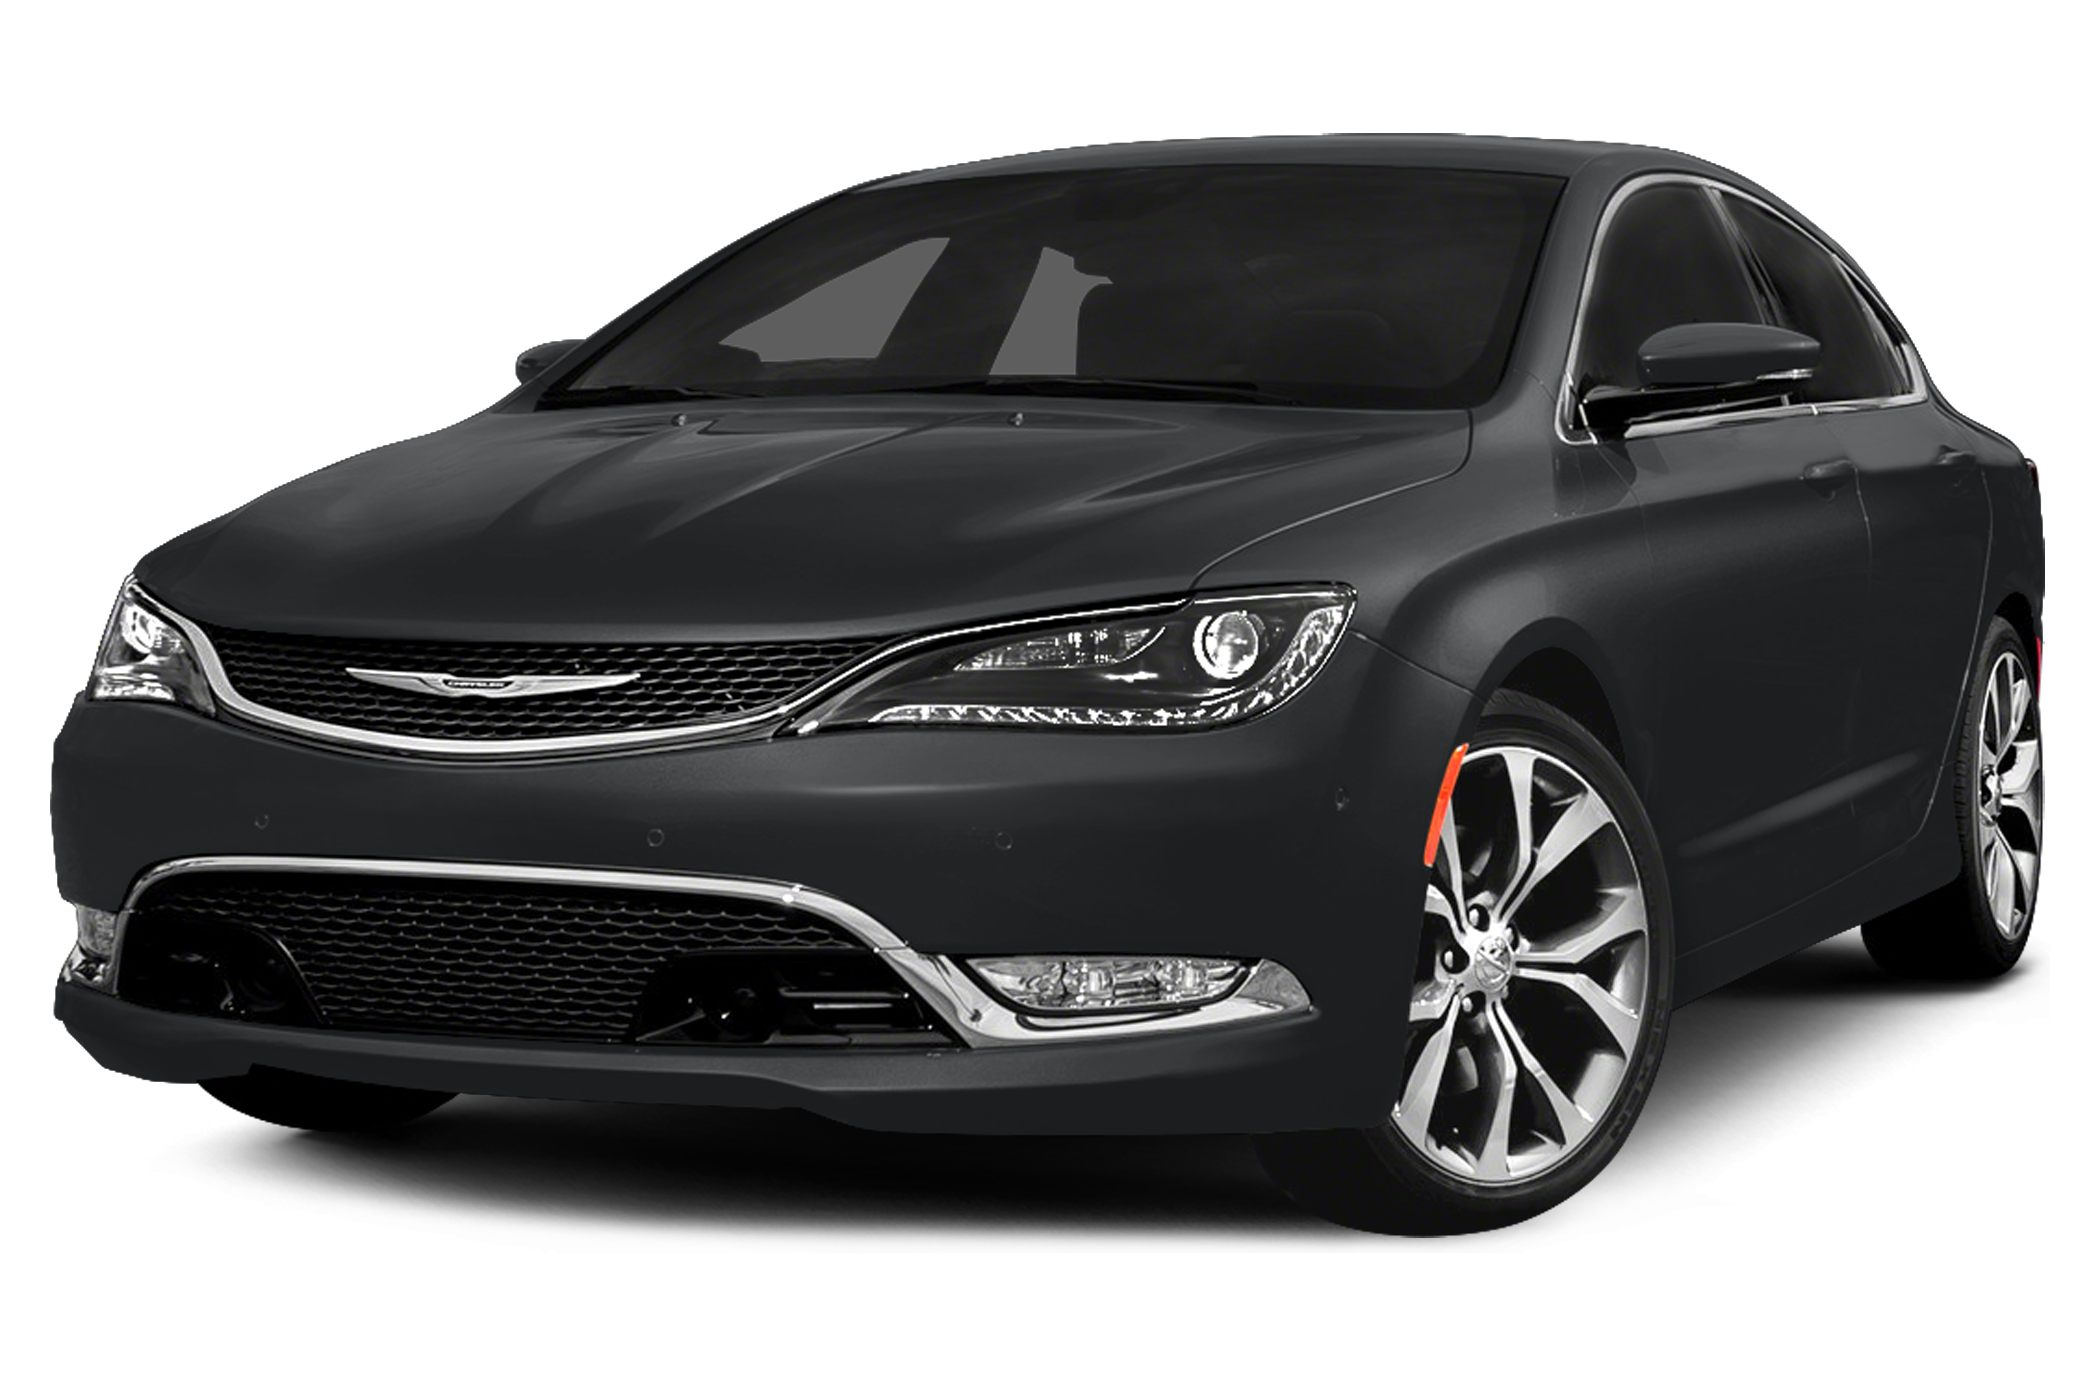 2015 Chrysler 200 Limited Sedan for sale in Tahlequah for $24,580 with 10 miles